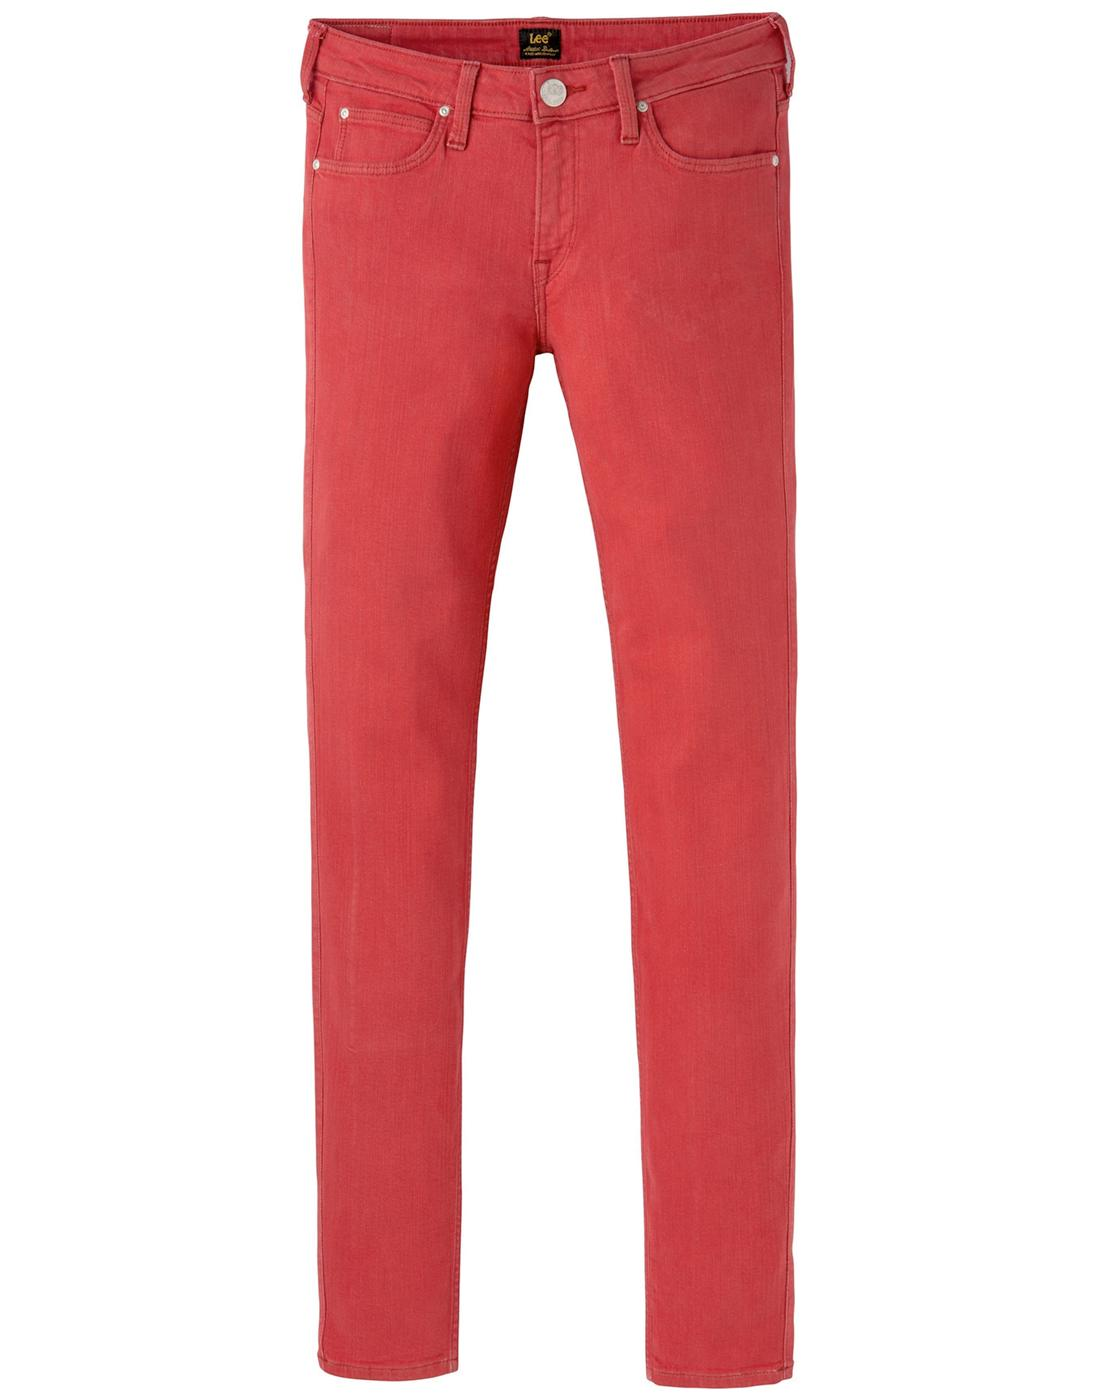 Scarlett LEE JEANS Womens Skinny Jeans in Pop Red